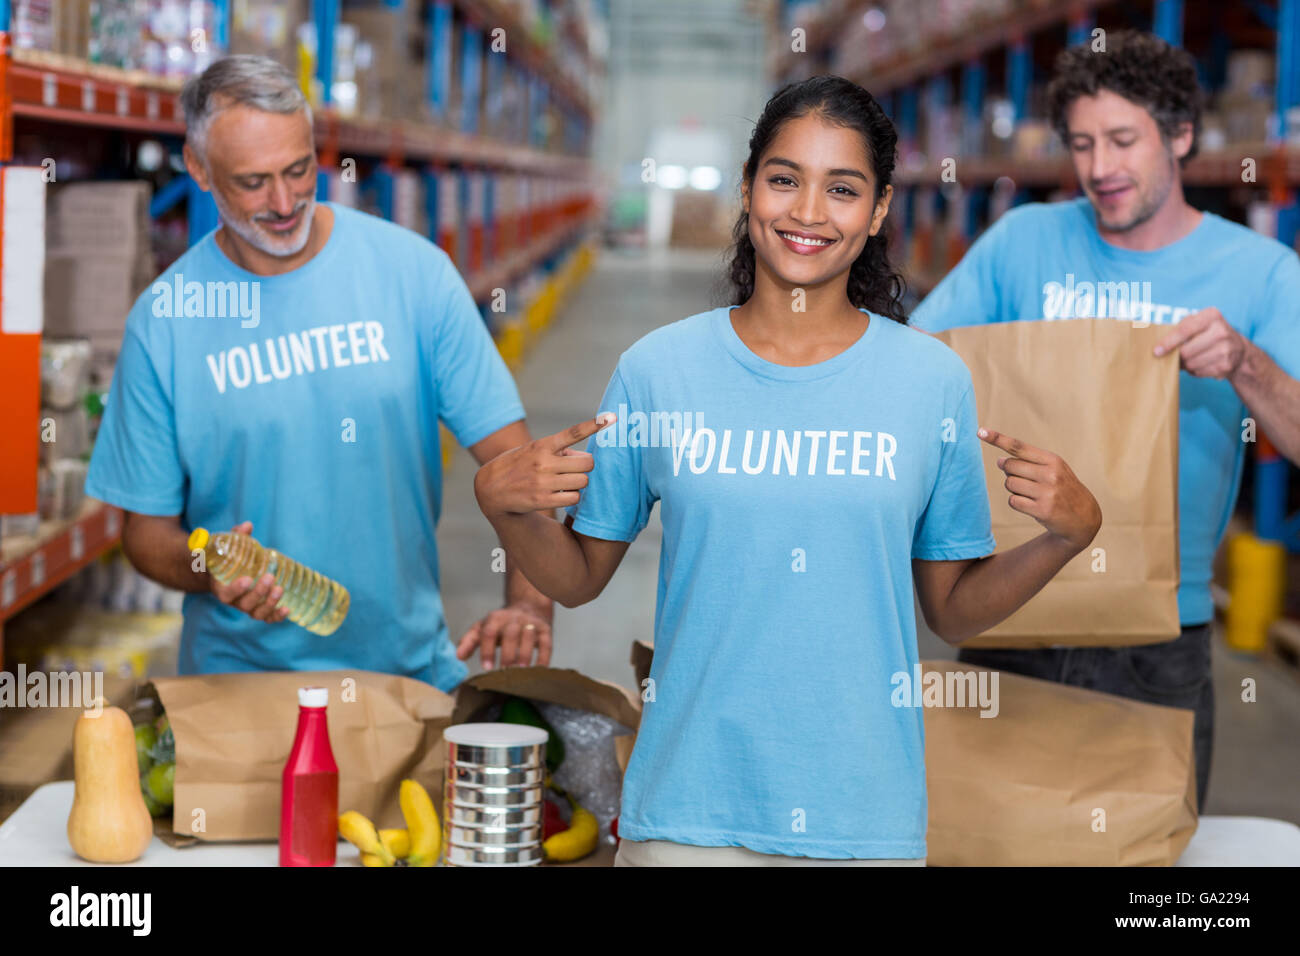 Happy volunteer showing her tee-shirt to the camera in front of her team - Stock Image